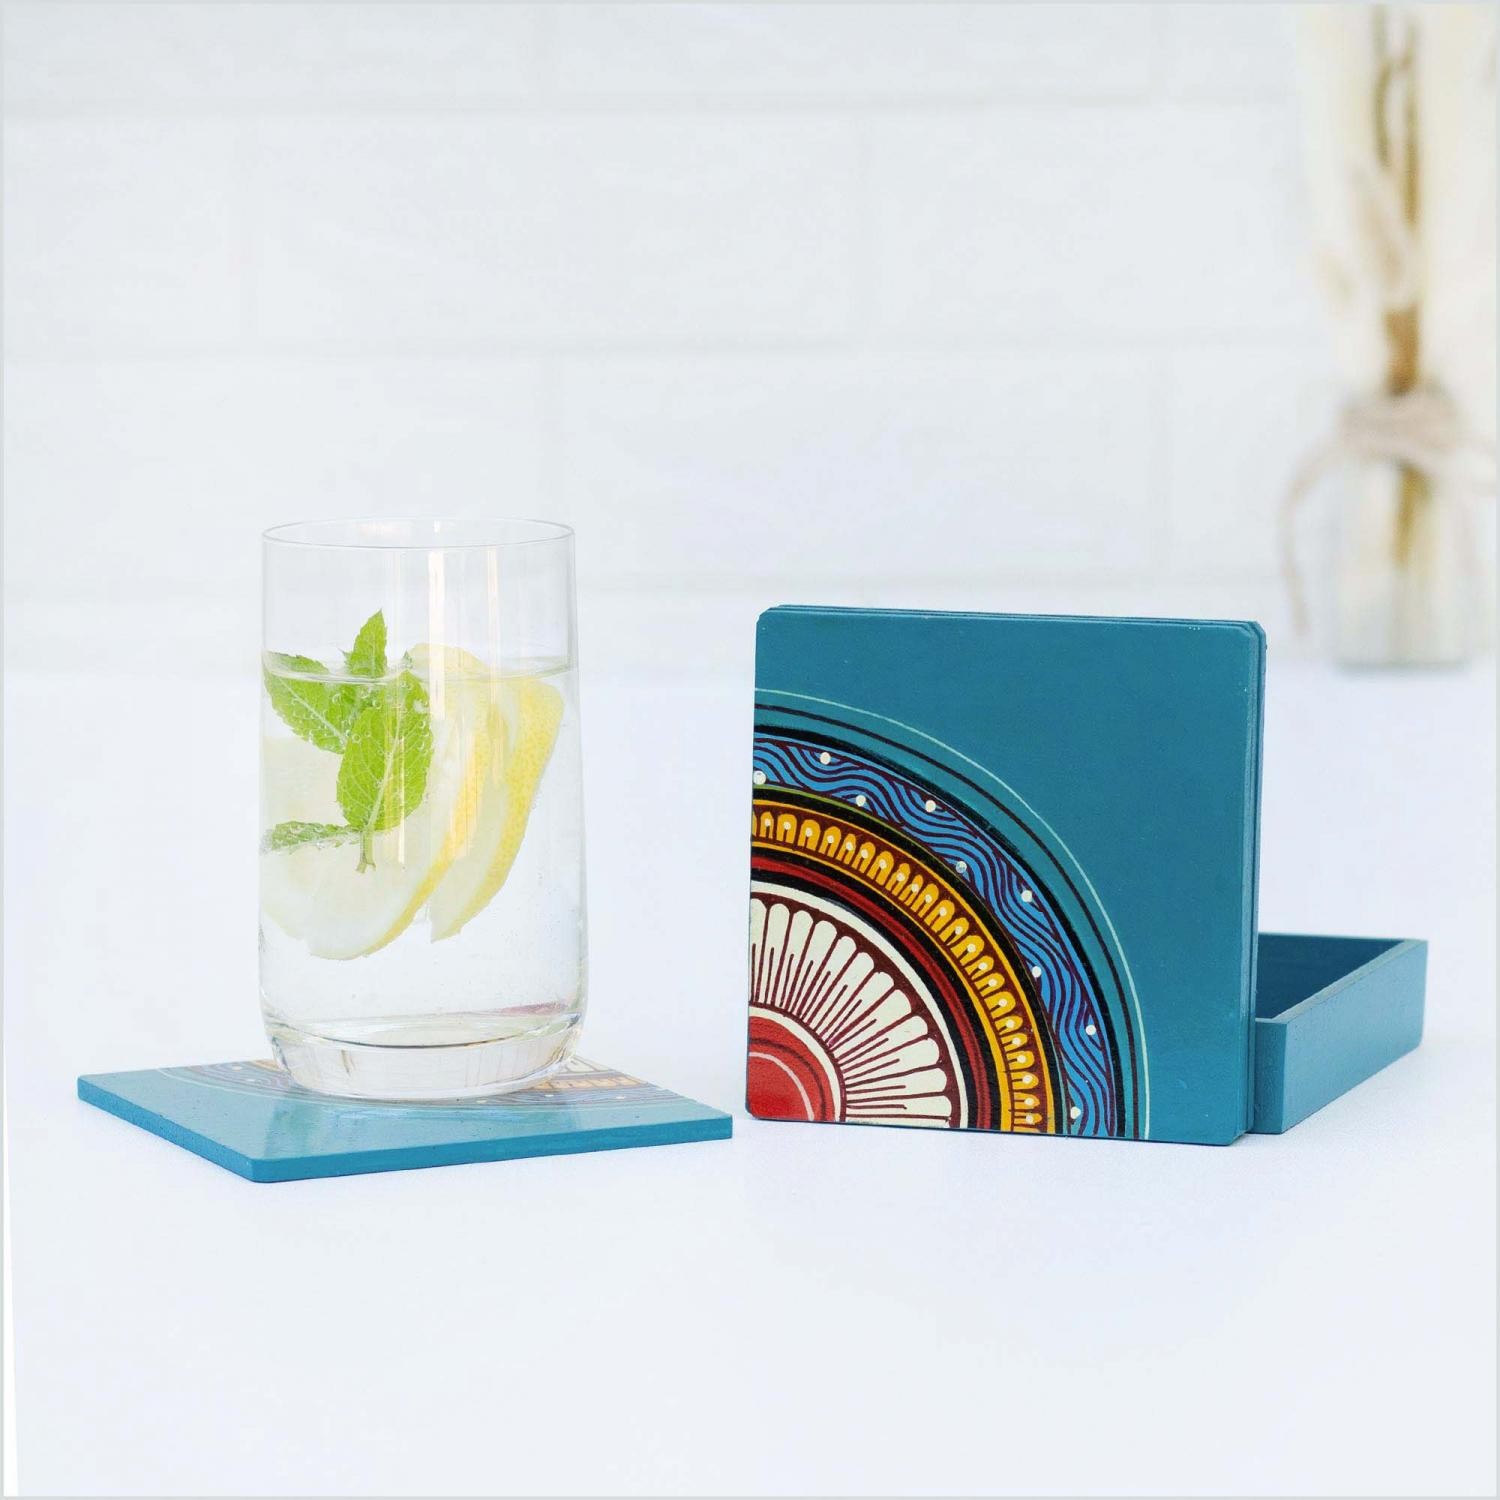 Blue coasters with red, yellow and blue motifs standing in front of a blue holder on a white surface next to a glass of water with mint and lemon standing on a coaster and a vase of dried flowers in the background